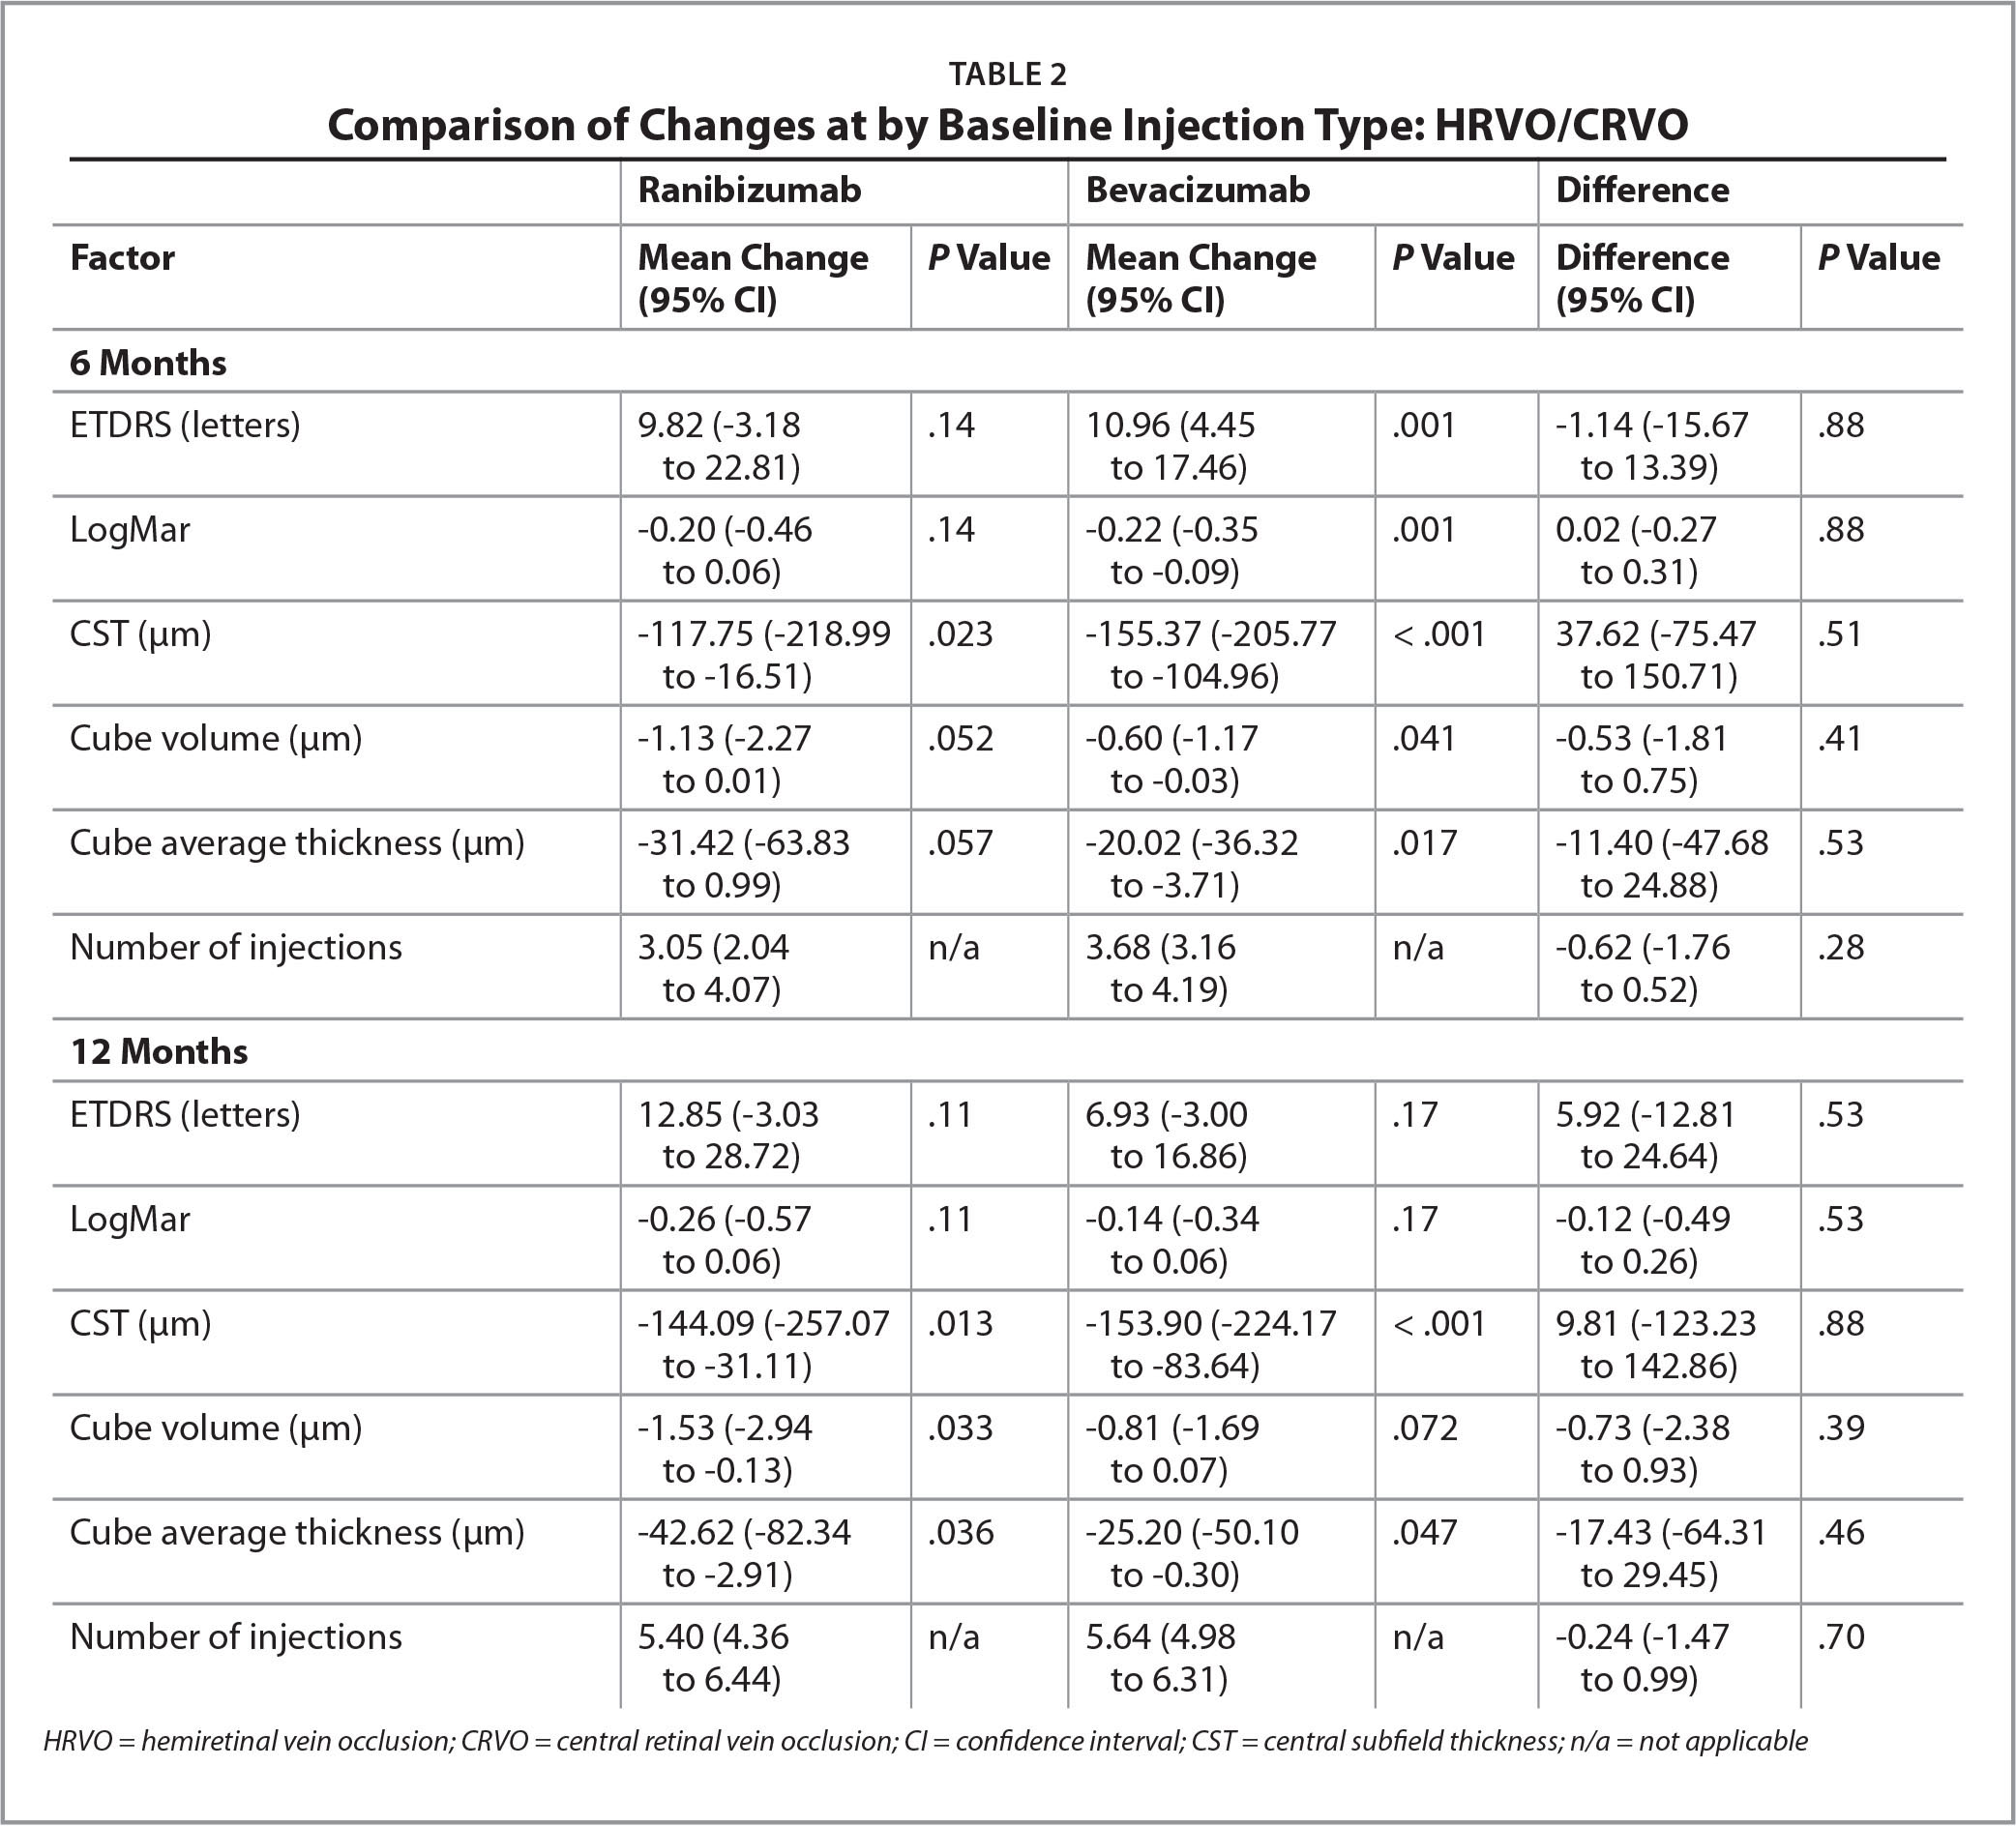 Comparison of Changes at by Baseline Injection Type: HRVO/CRVO